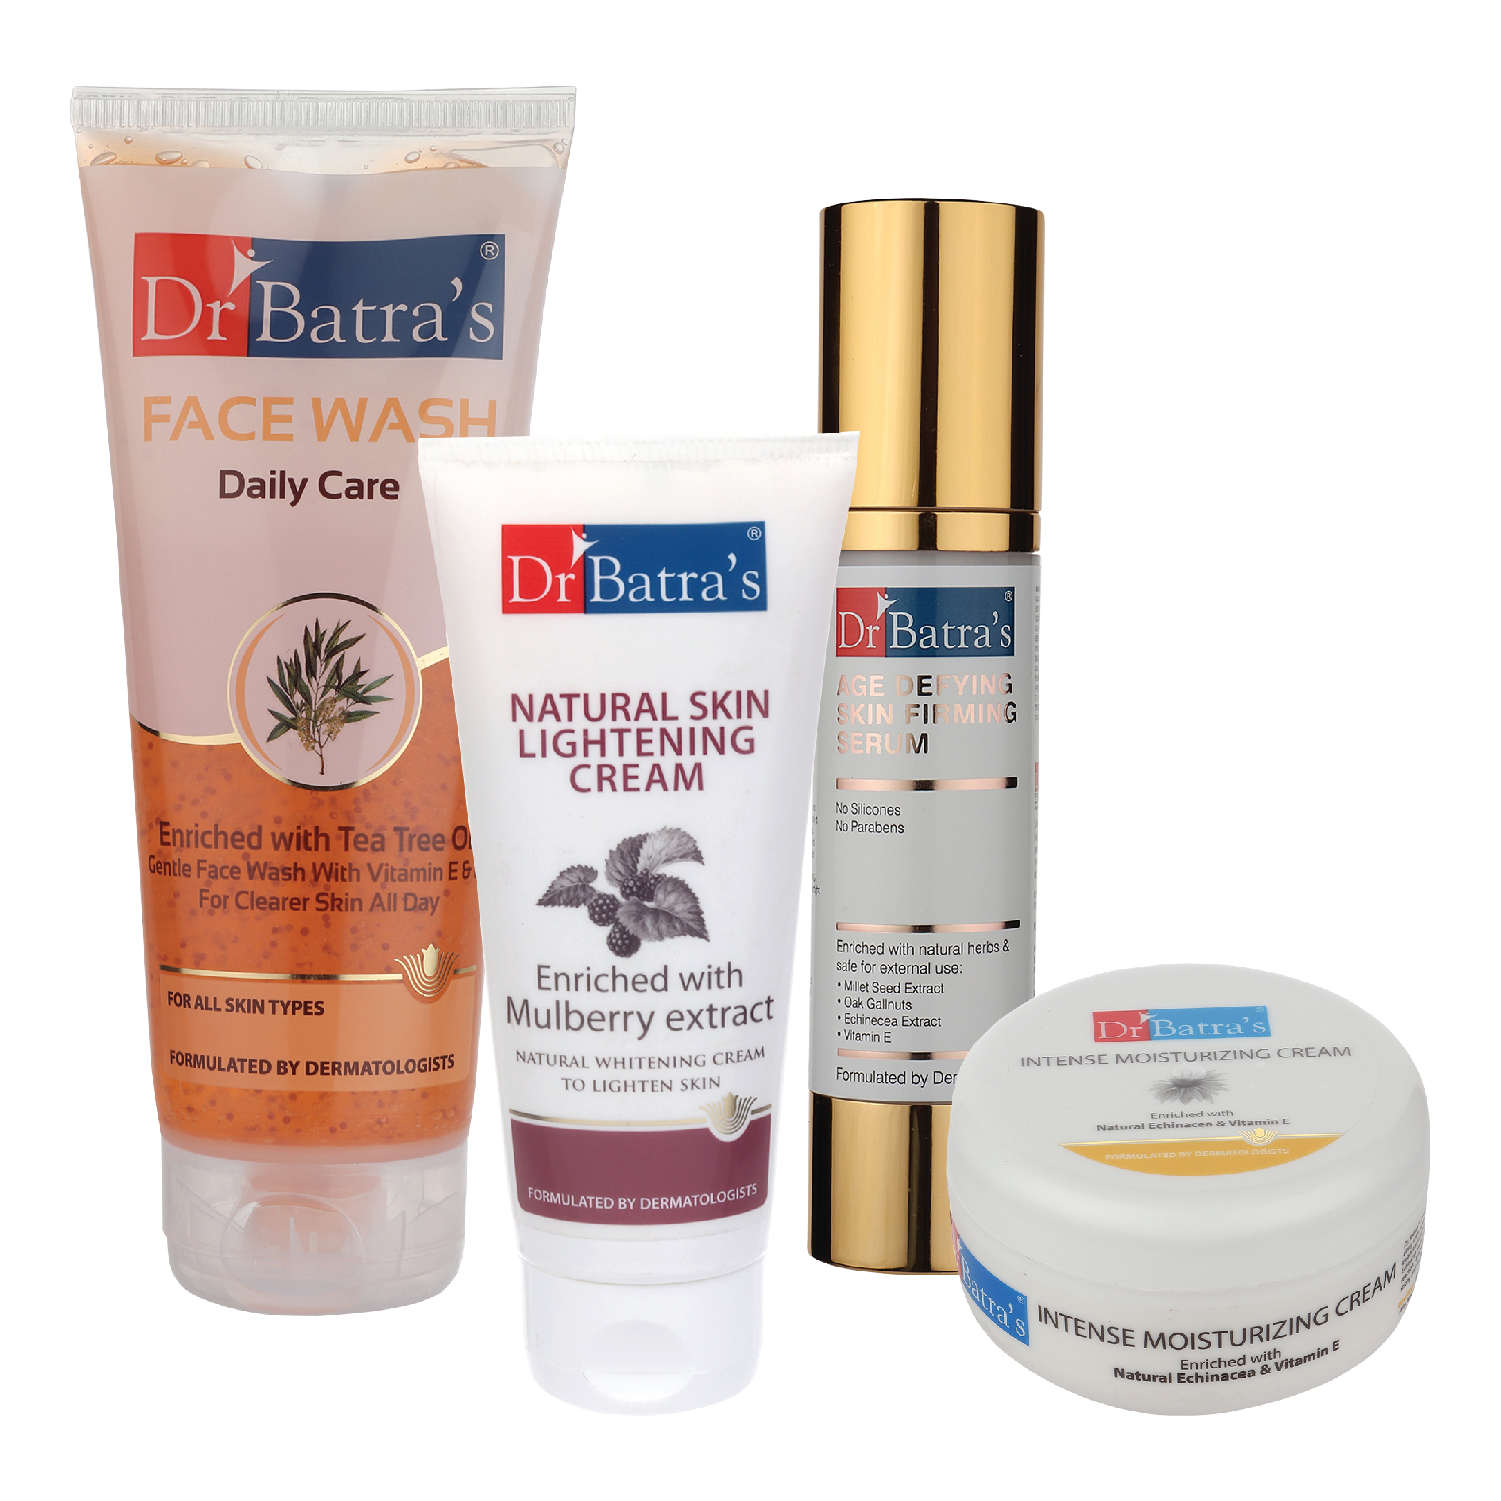 Dr Batra's | Dr Batra's Age Defying Skin Firming Serum - 50 G, Face Wash Daily Care - 200 gm, Natural Skin Lightening Cream - 100 gm and Intense Moisturizing Cream -100 G (Pack of 4)